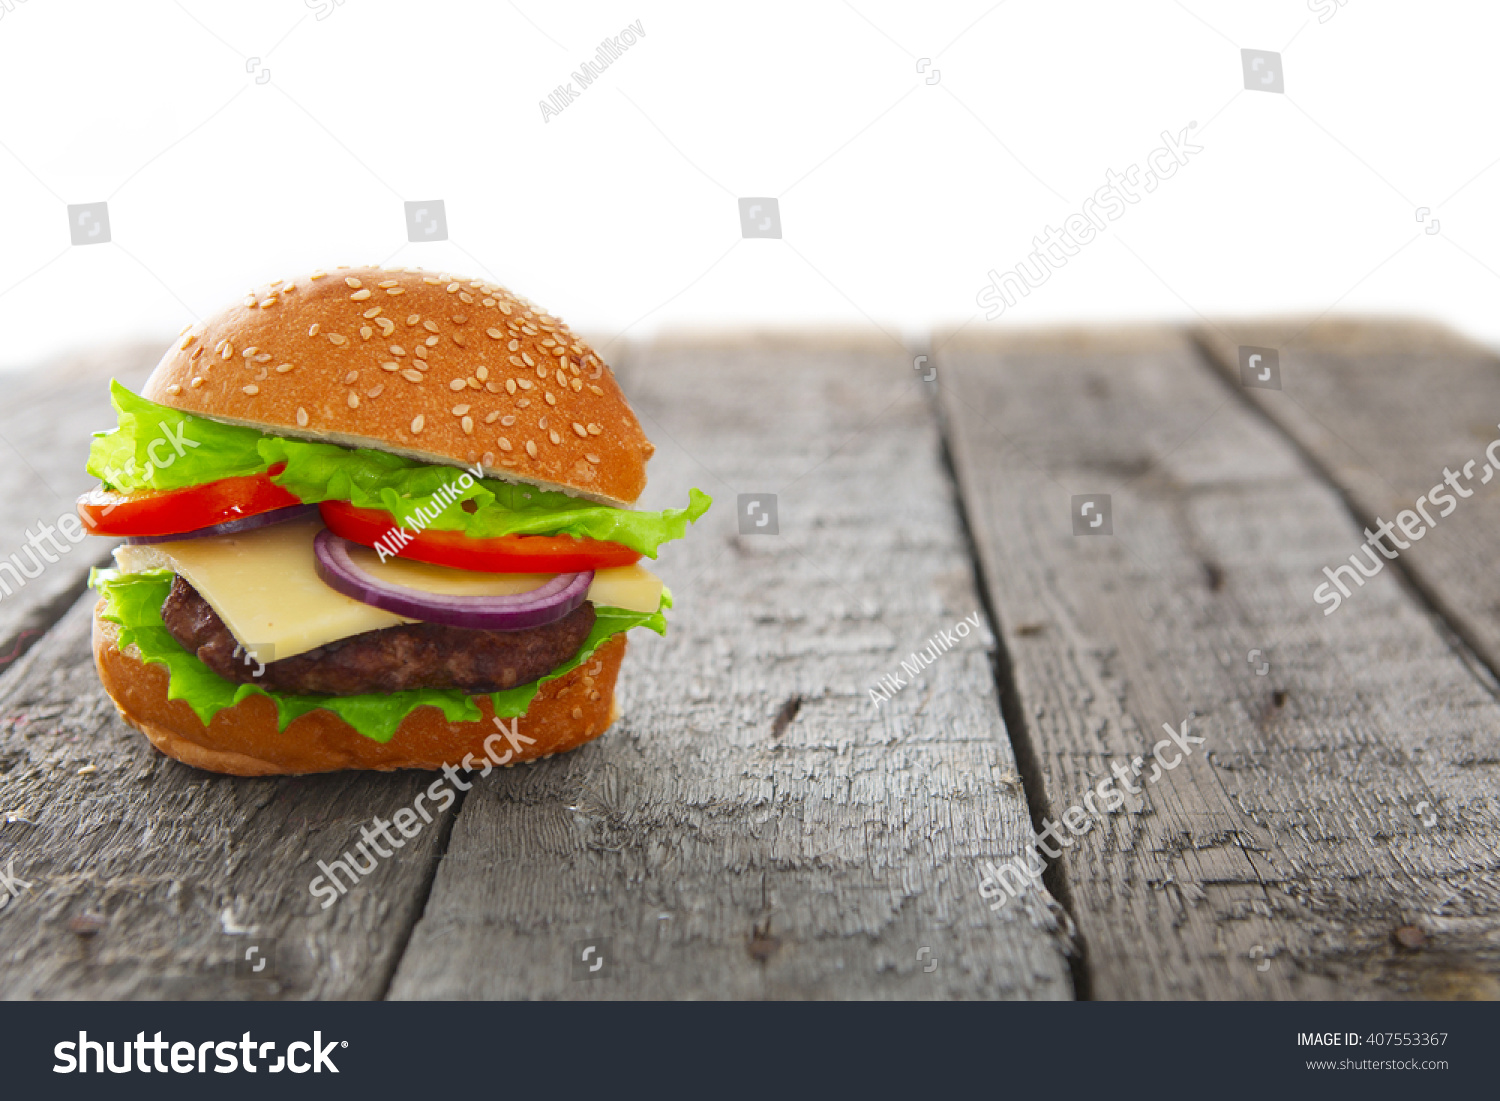 Burger hamburger cheeseburger on table wooden stock photo for Table burger